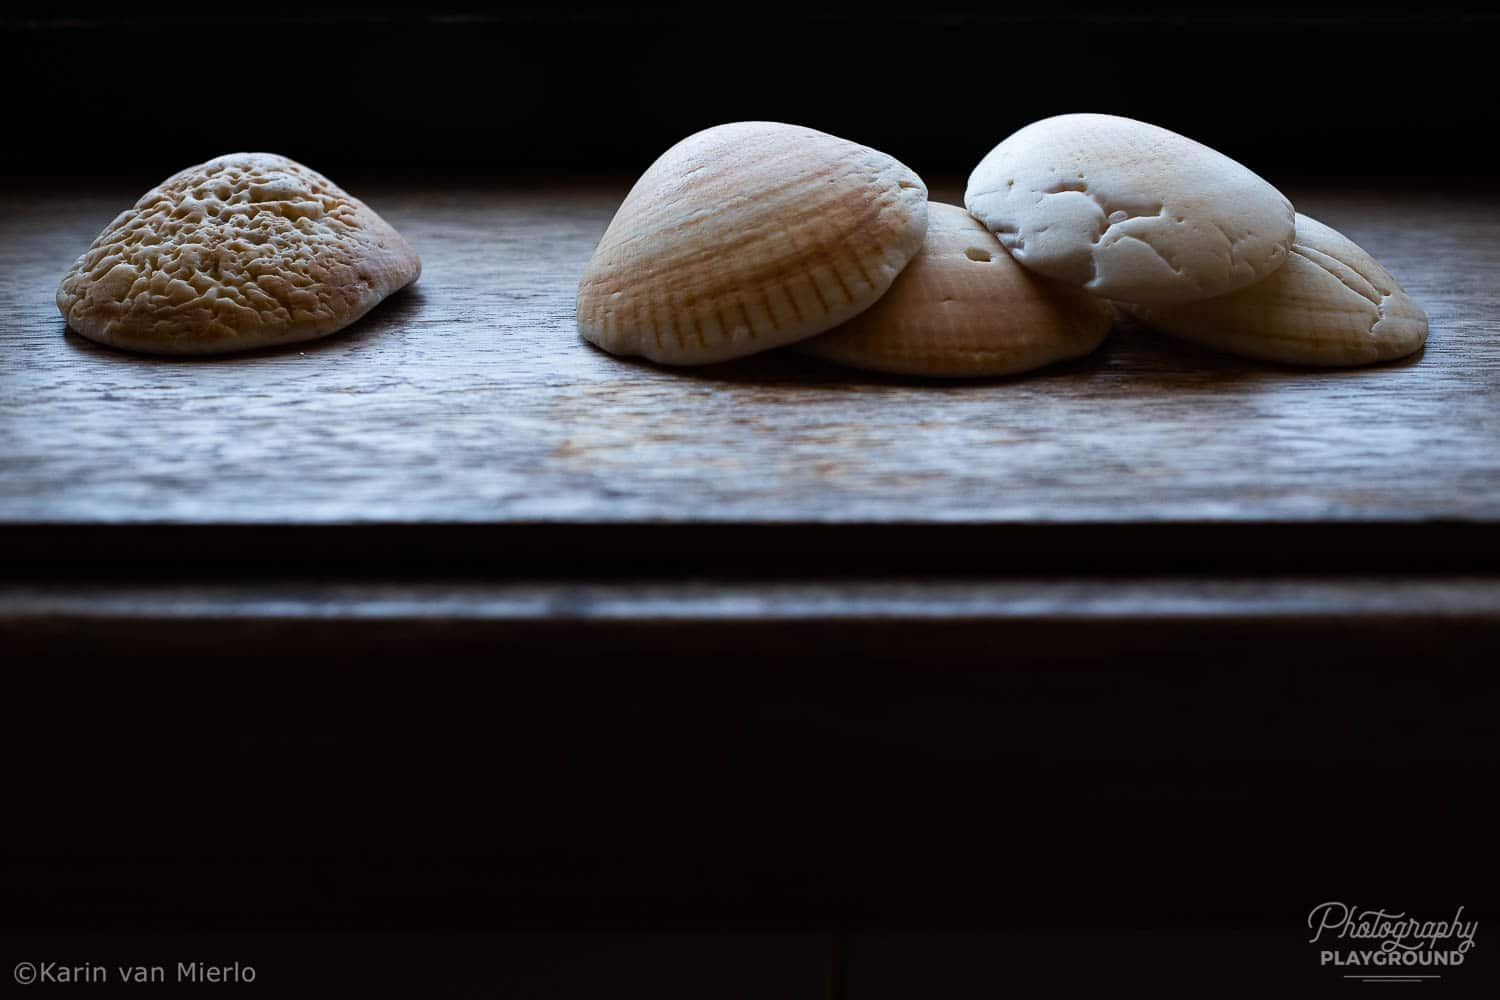 mindful photography tips, mindful photography ideas | Photo: ©Karin van Mierlo, Photography Playground ~ Shells in the window, Porto, Portugal